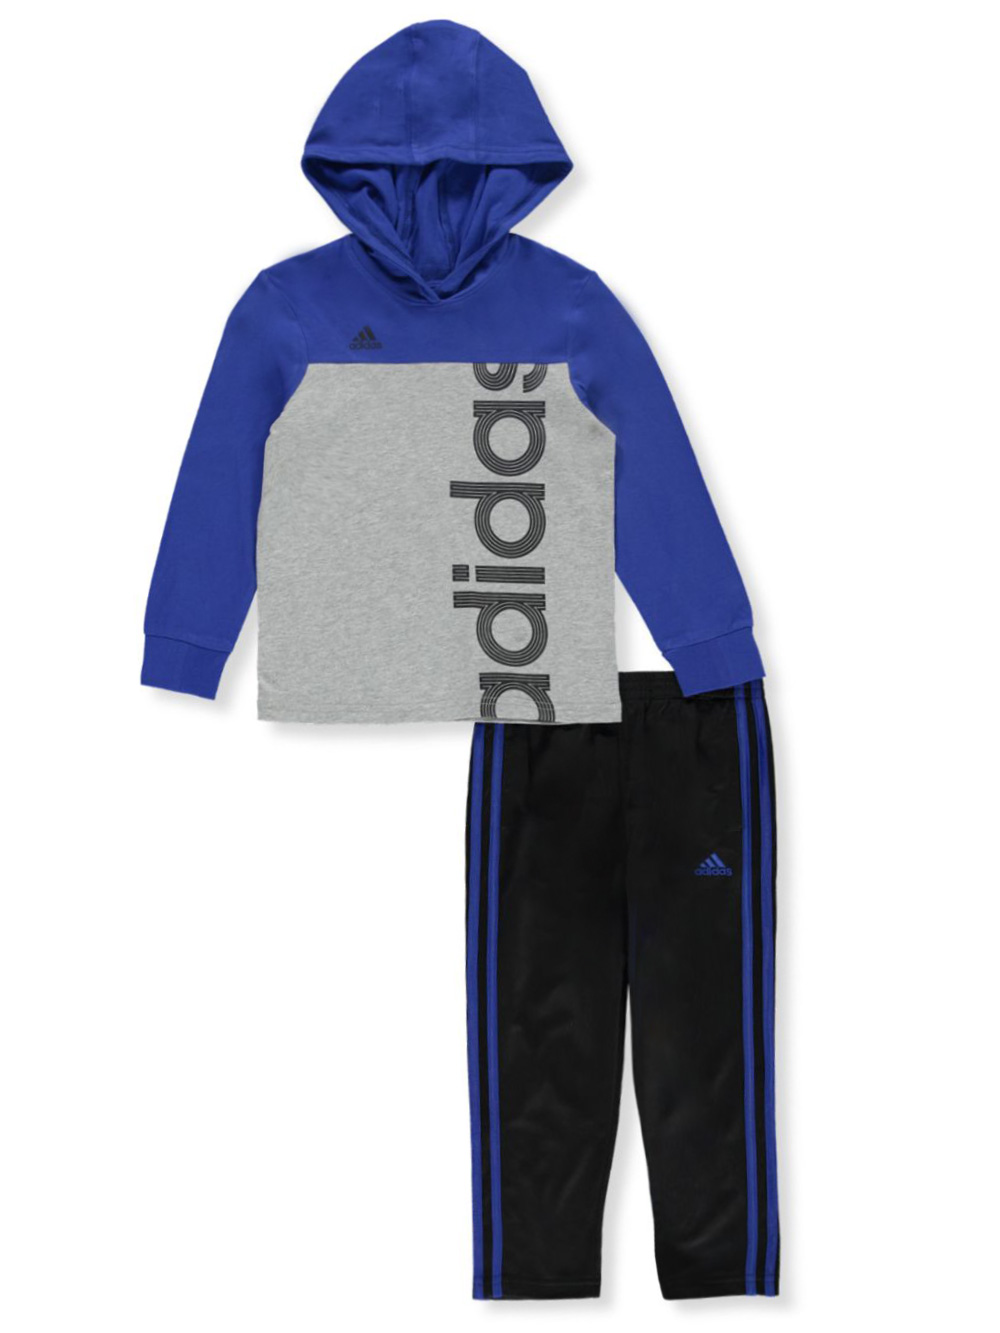 Boys' Paneled 2-Piece Joggers Set Outfit